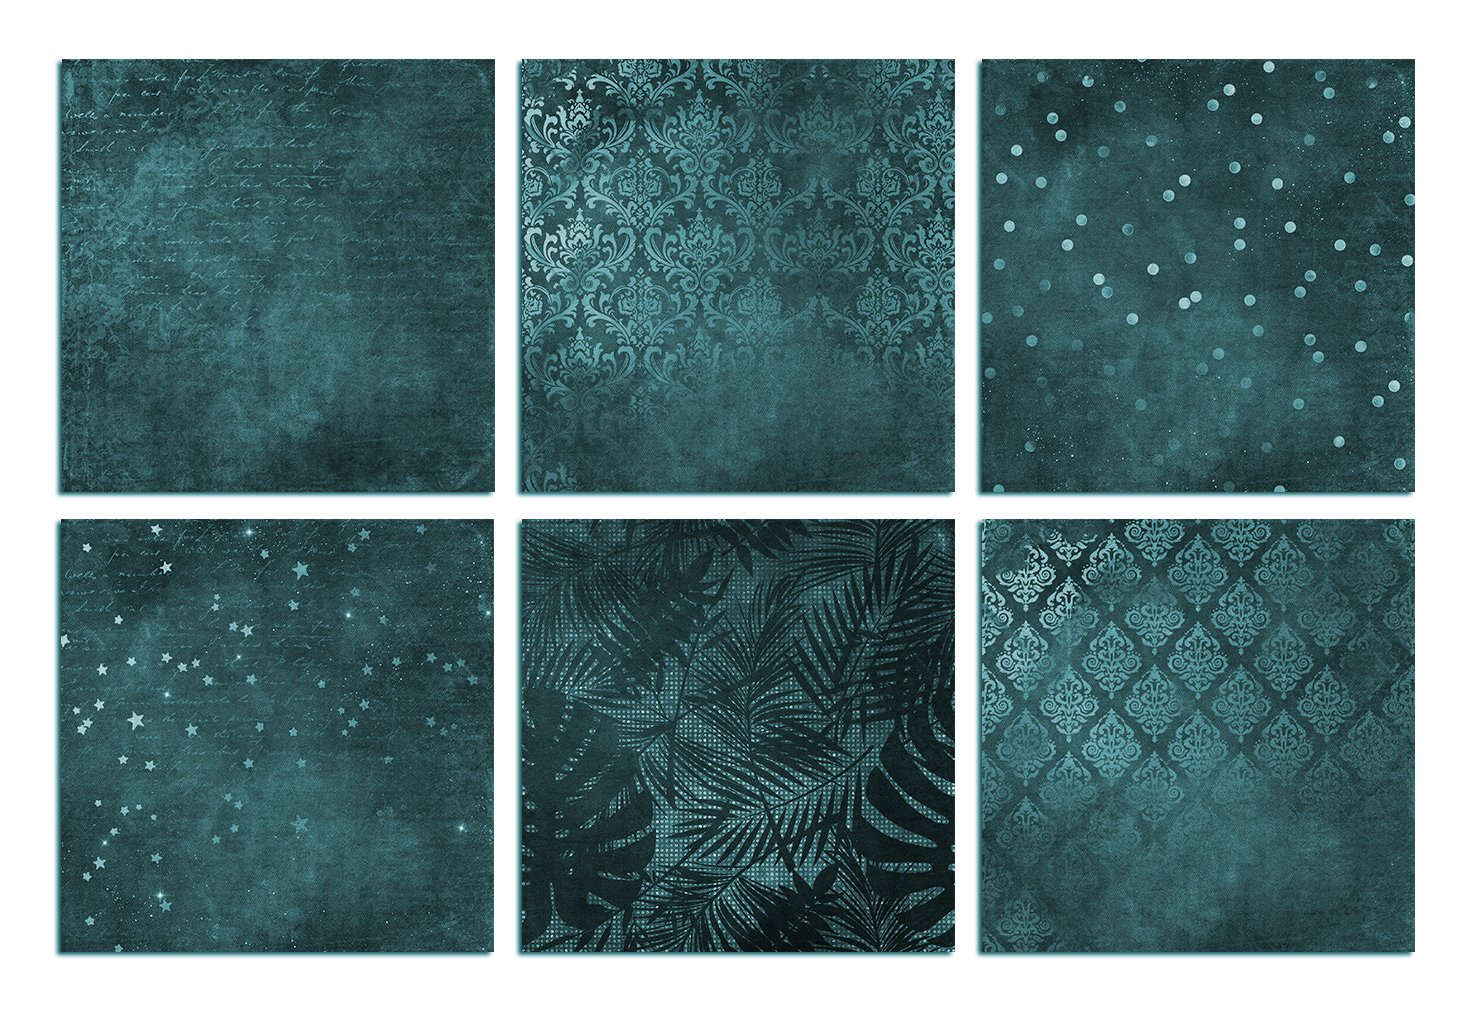 Green and Turquoise Textures example image 2